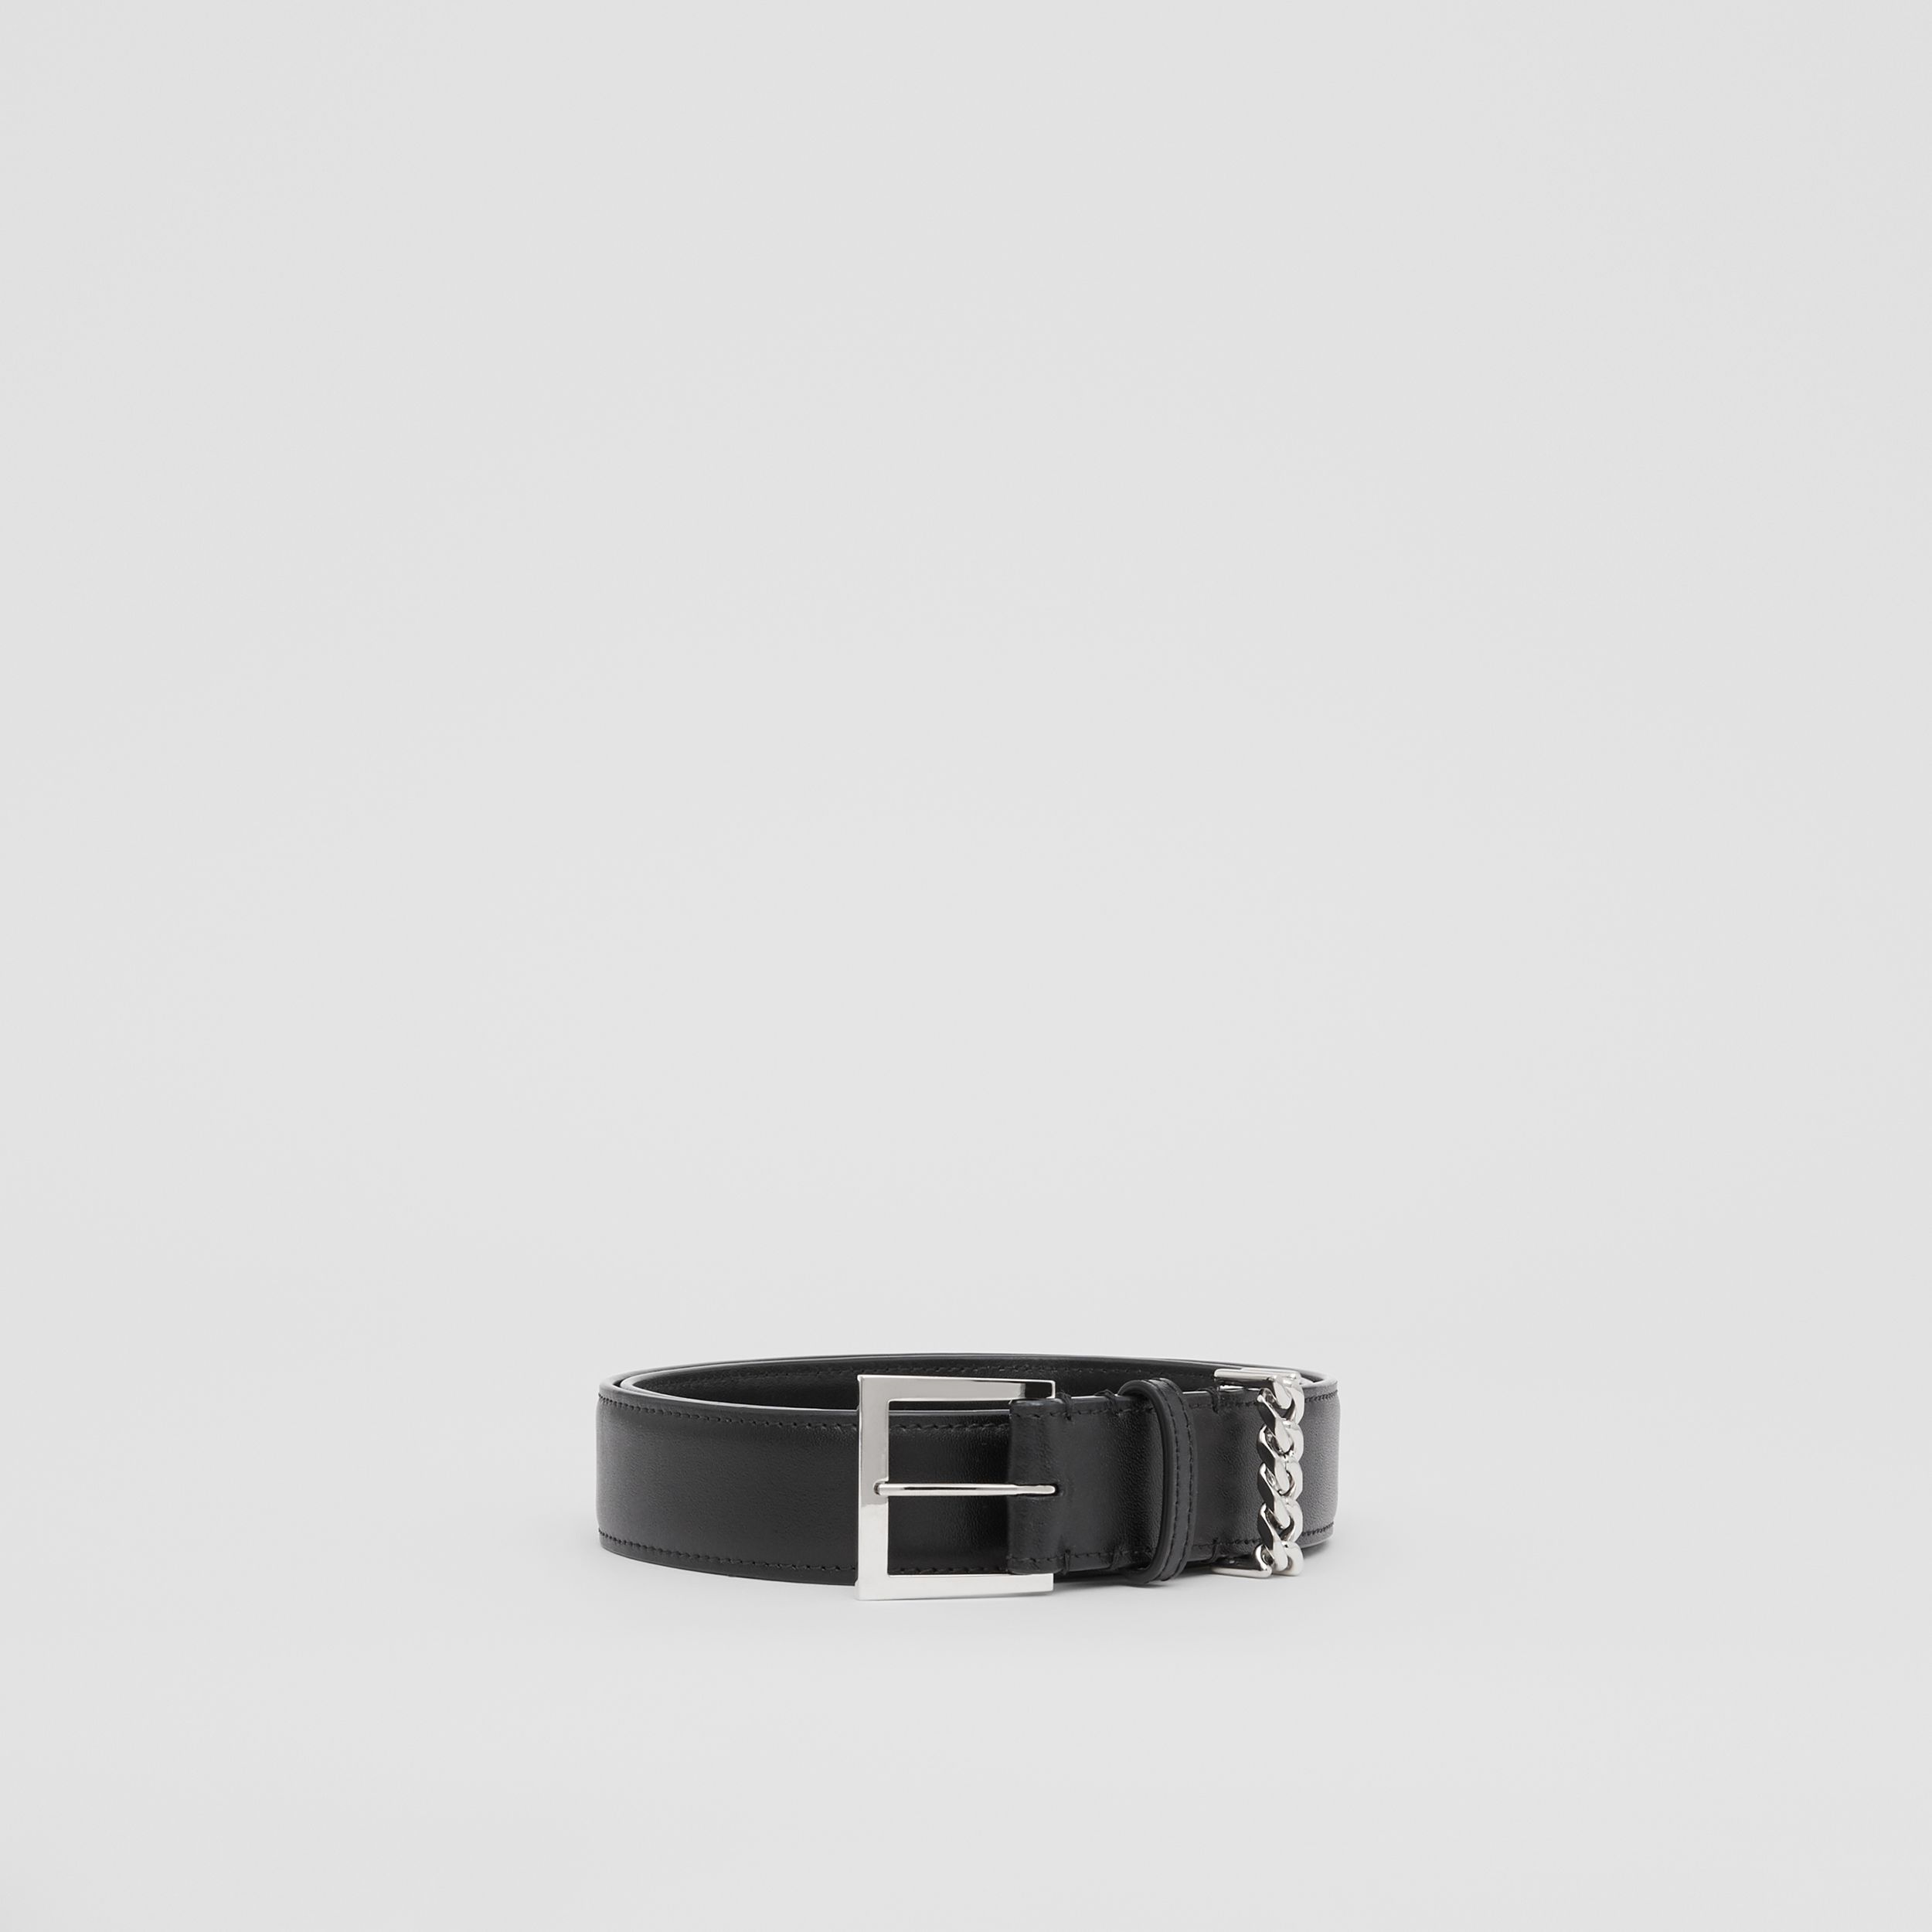 Chain Detail Leather Belt in Black/palladium - Women | Burberry - 4